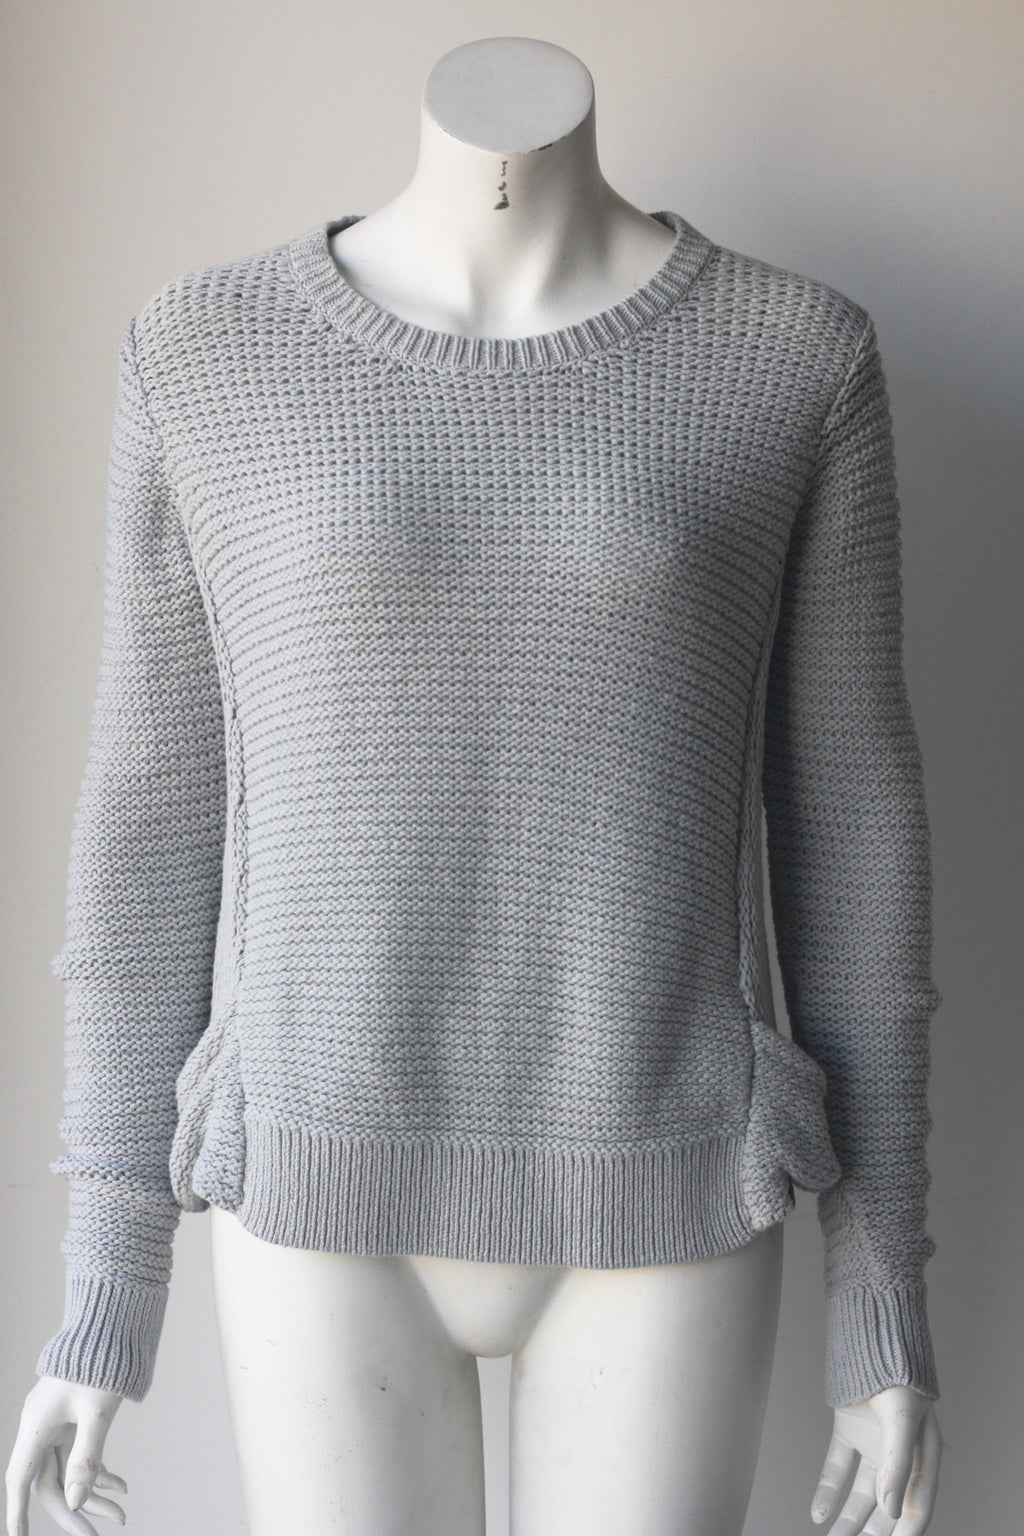 Signal Light Grey Cable Knit Long Sleeve Sweater - Joyce's Closet  - 1